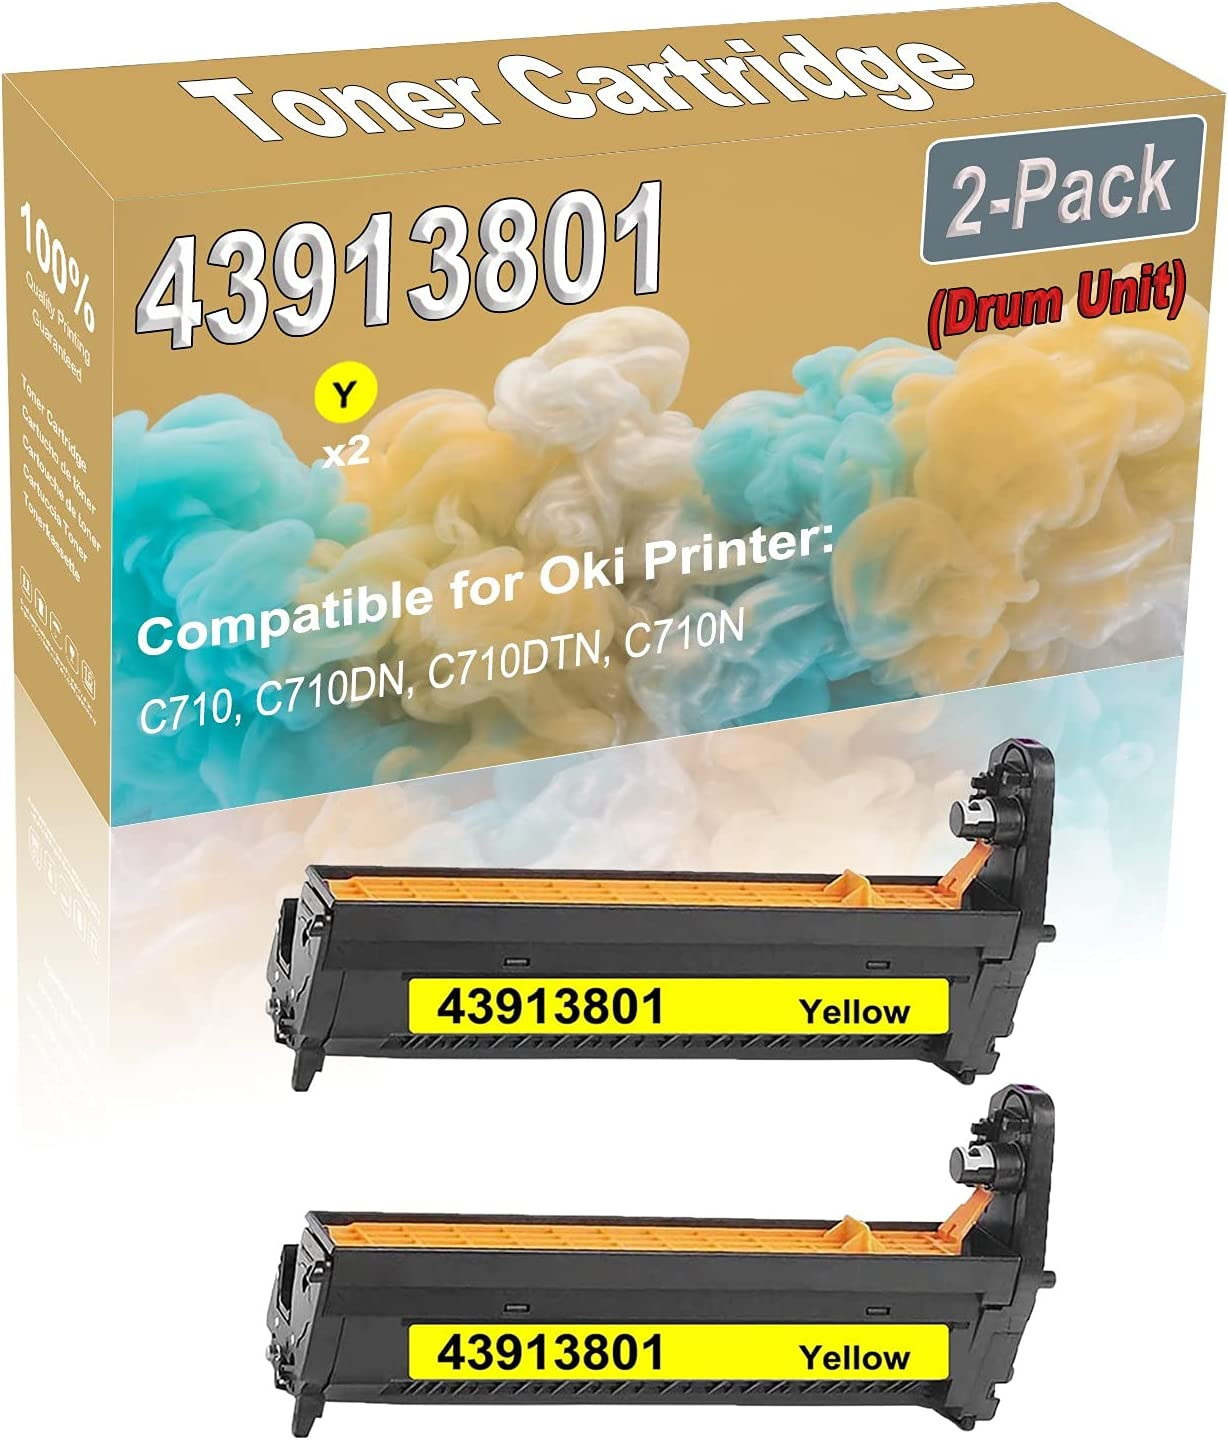 2-Pack (Yellow) Compatible High Capacity 43913801 Printer Drum Unit Used for Oki C710, C710DN, C710DTN, C710N Printer